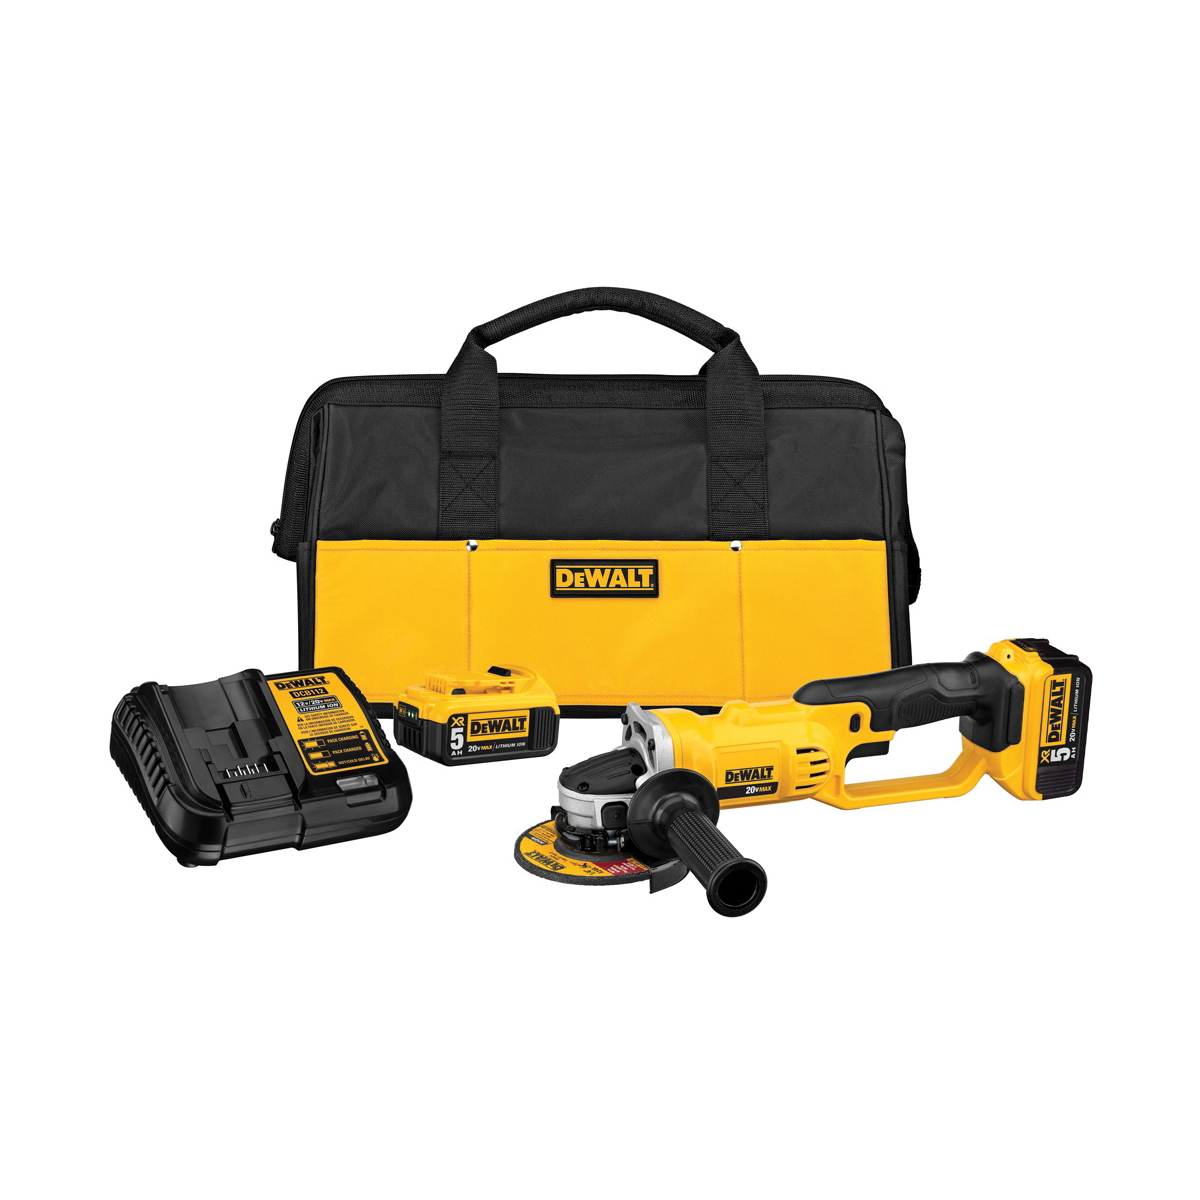 DeWALT® DCG412P2 Cordless Cut-Off Tool Kit, 4-1/2 in Dia Wheel, 5/8 in Arbor/Shank, 18 VDC, Lithium-Ion Battery, 2 Batteries, Trigger Switch